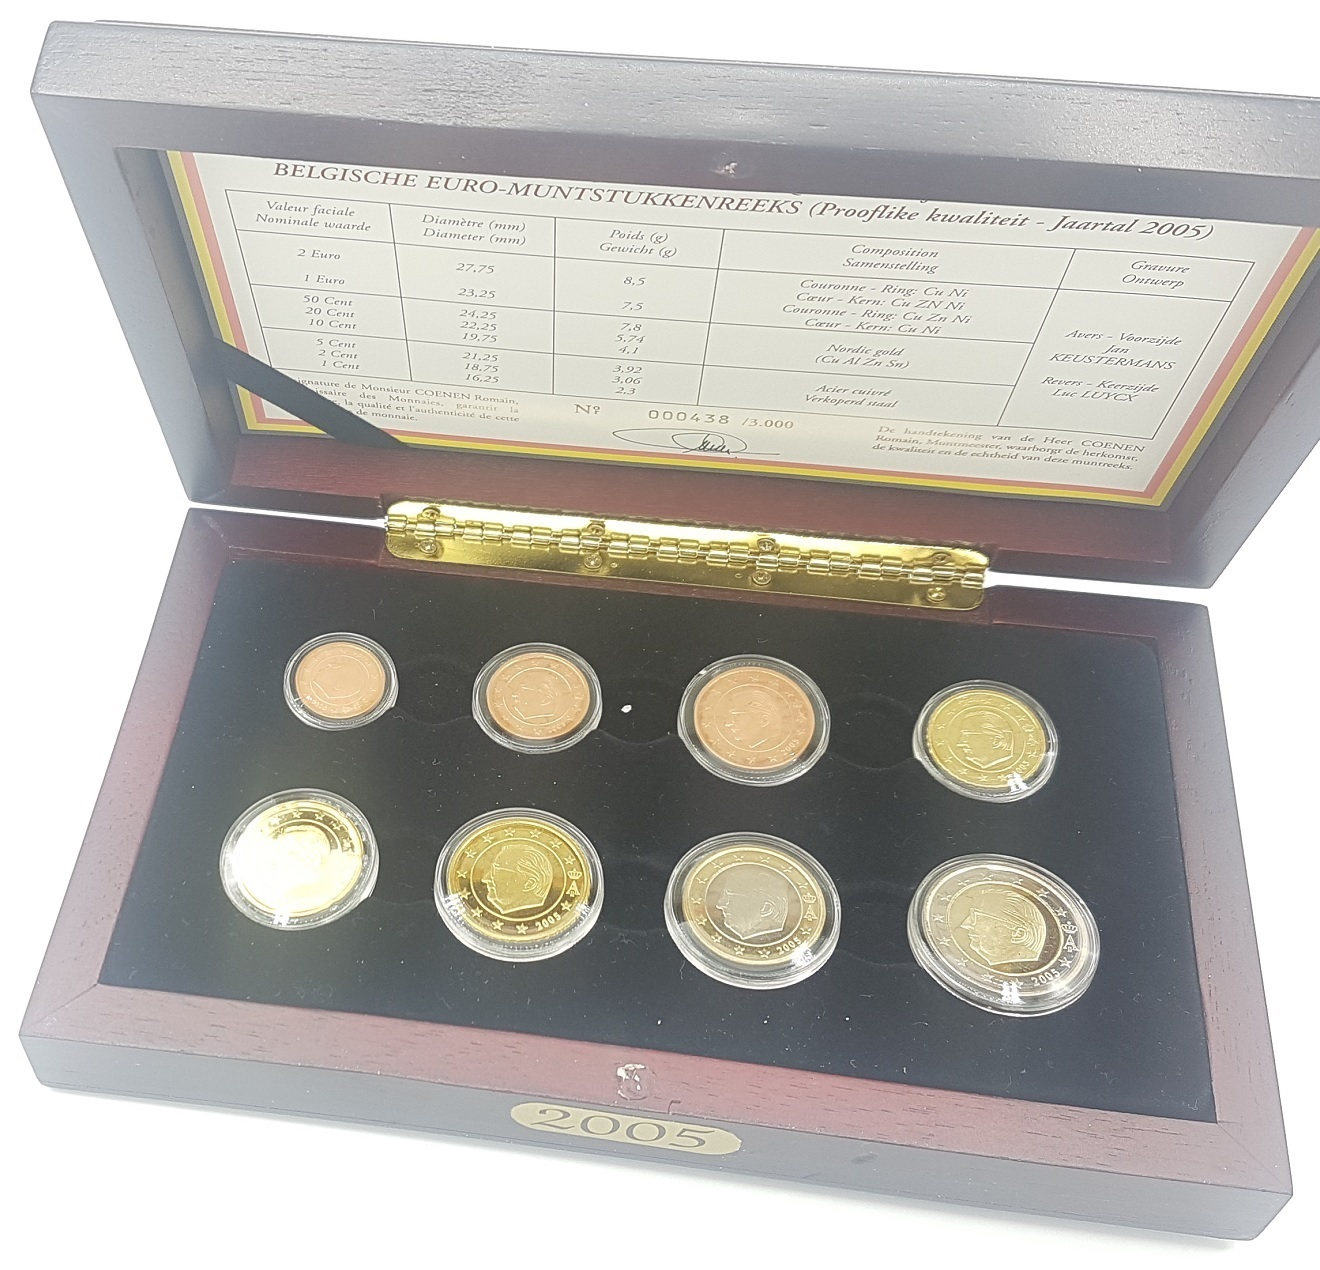 (EUR02.CofBE.2005.Cof-BE.000438) Proof coin set Belgium 2005 (inside) (zoom)